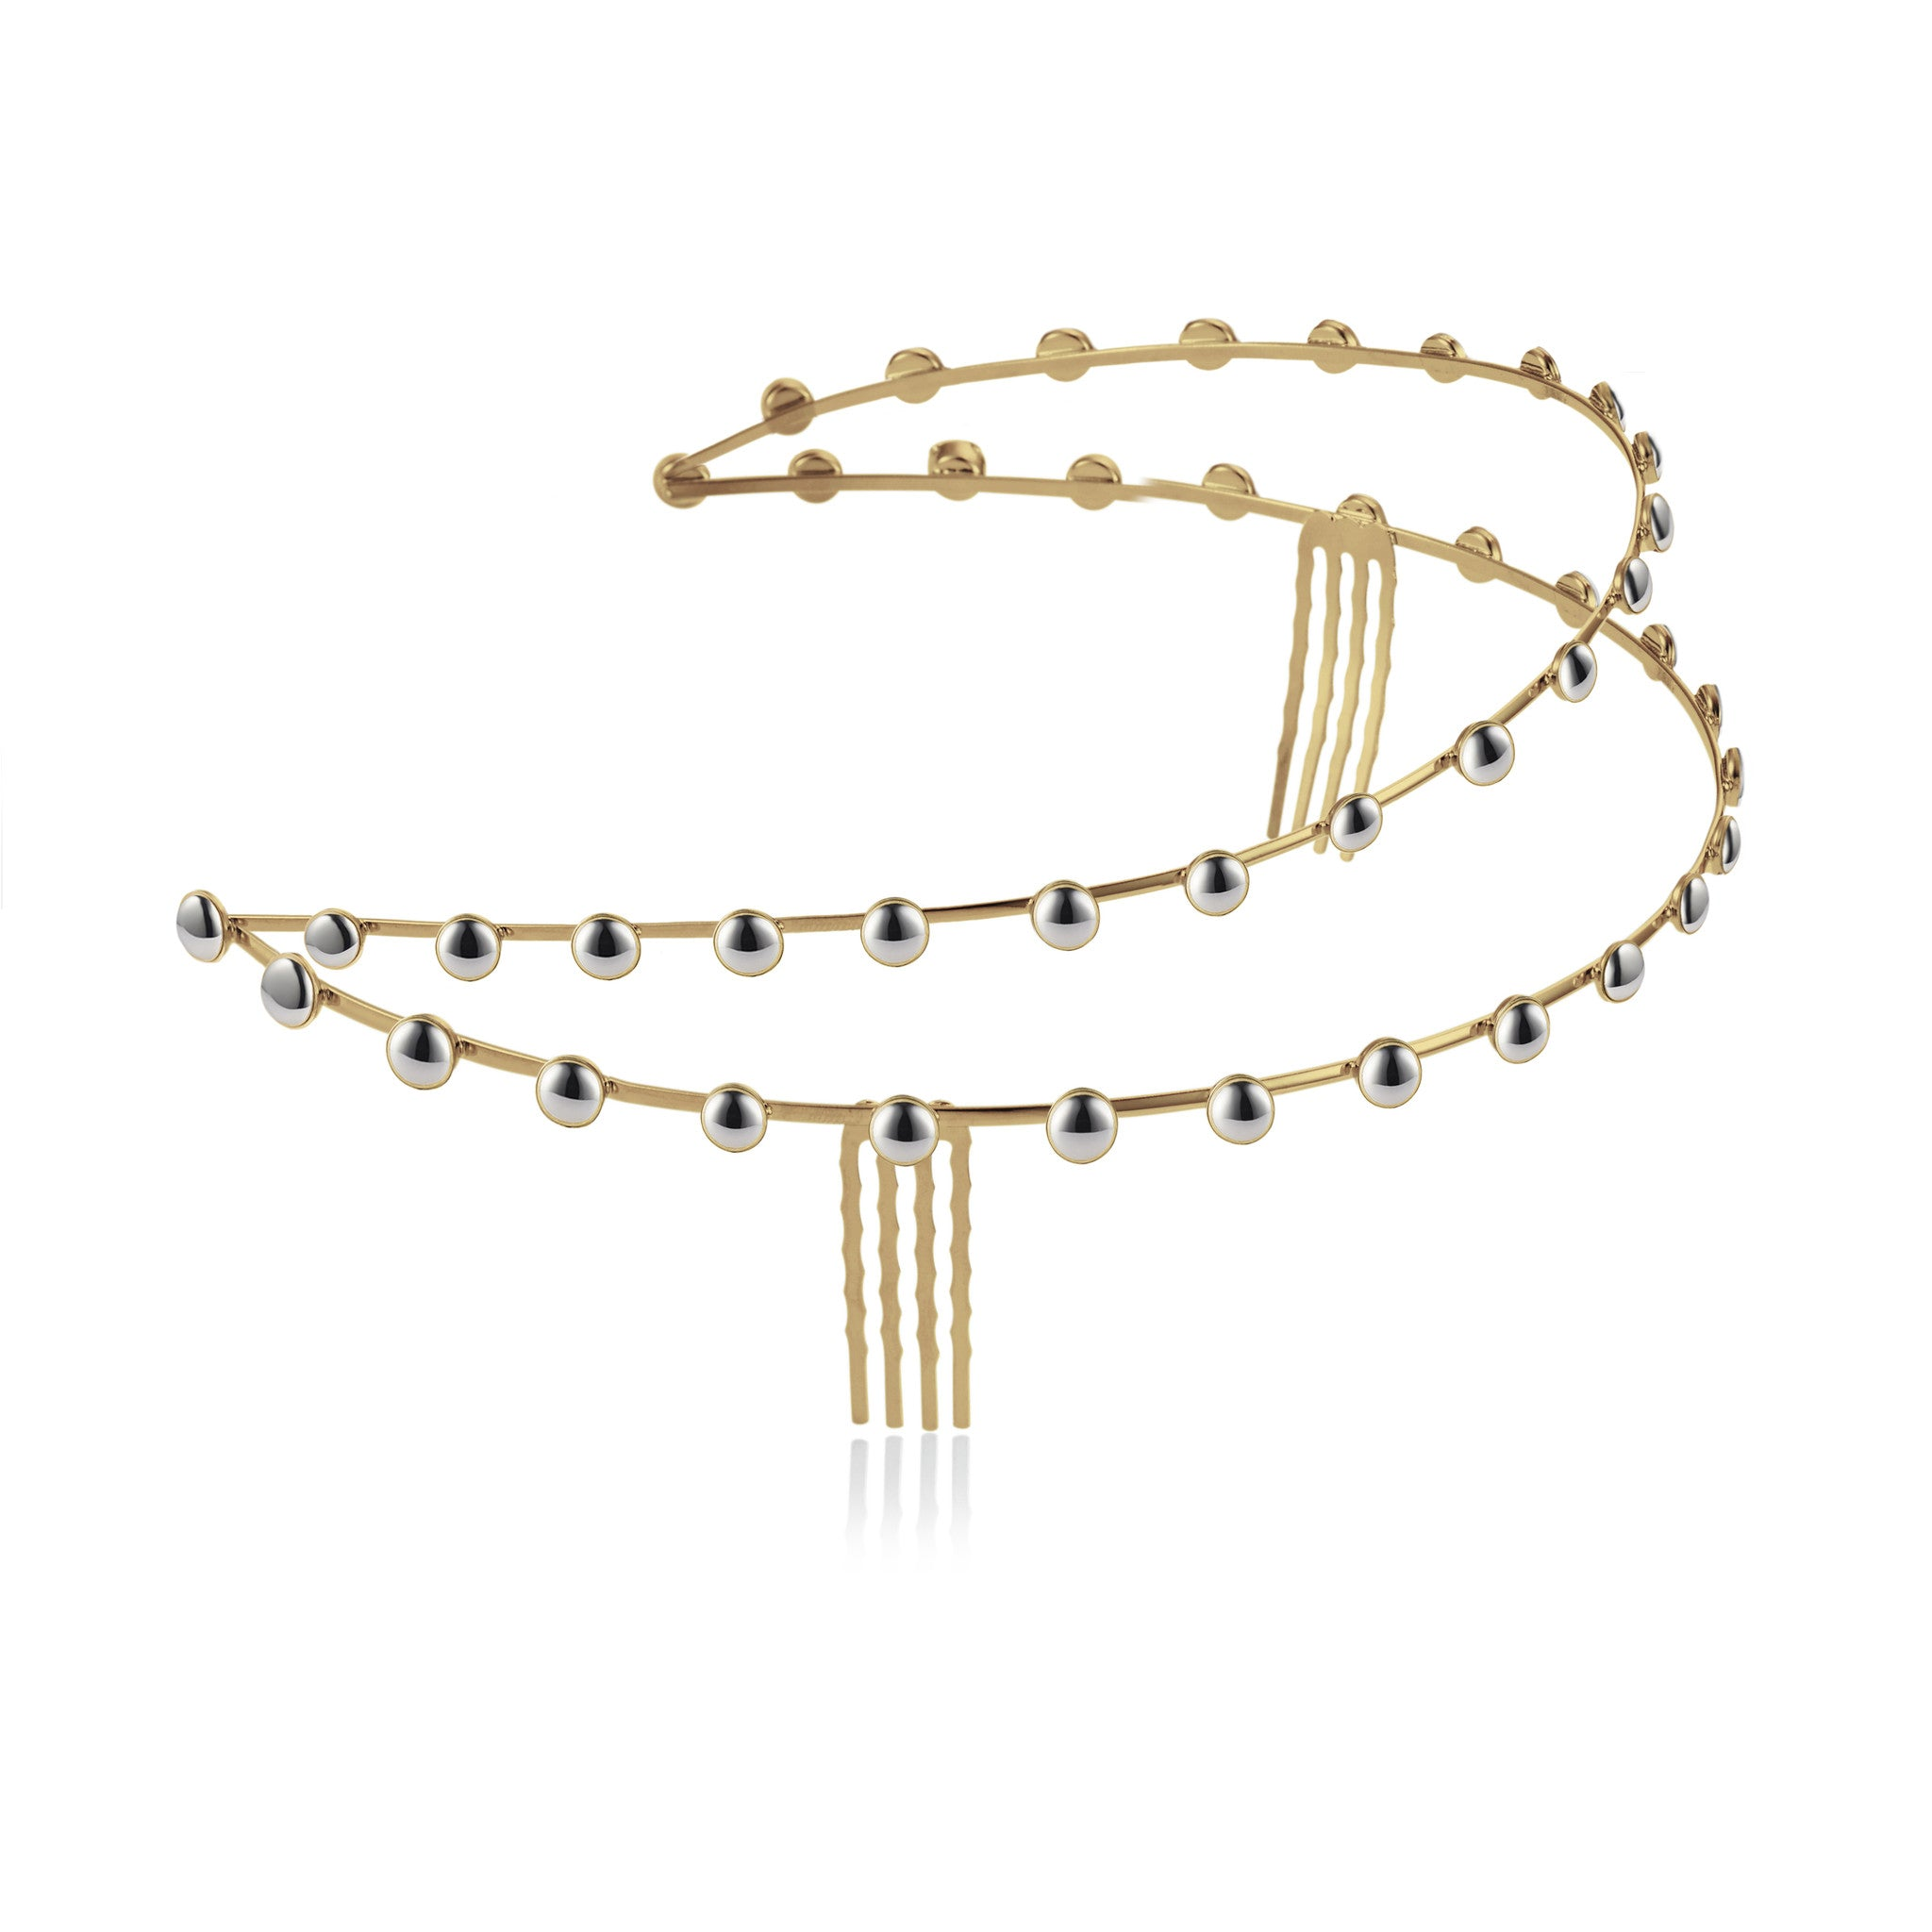 Solid brass, double row headpiece finished in contrasting 18K gold and rhodium plate - side